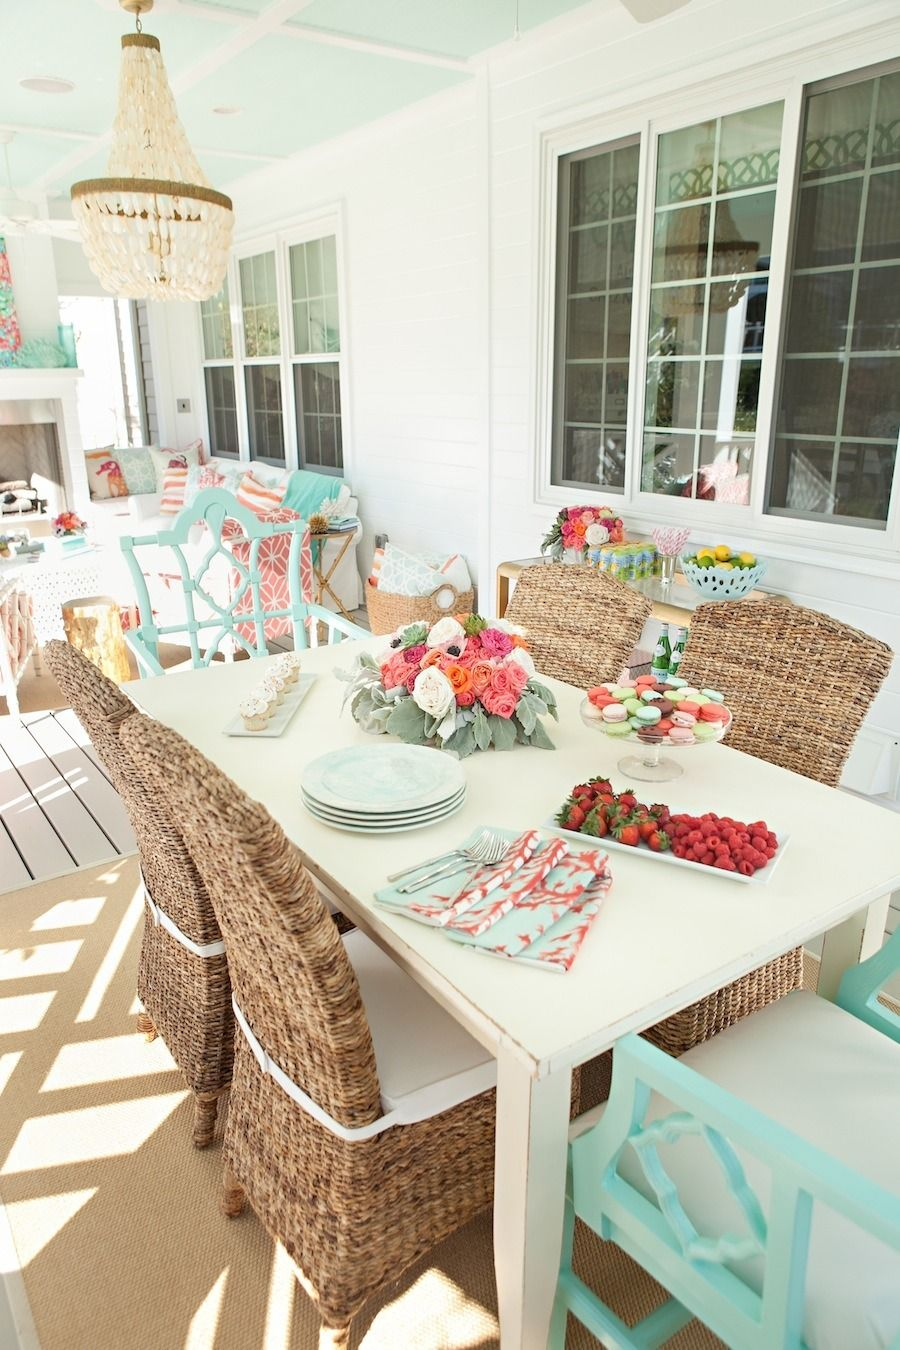 Outdoor table: http://www.stylemepretty.com/living/2015/06/19/30-outdoor-spaces-we-want-to-spend-all-summer-in/